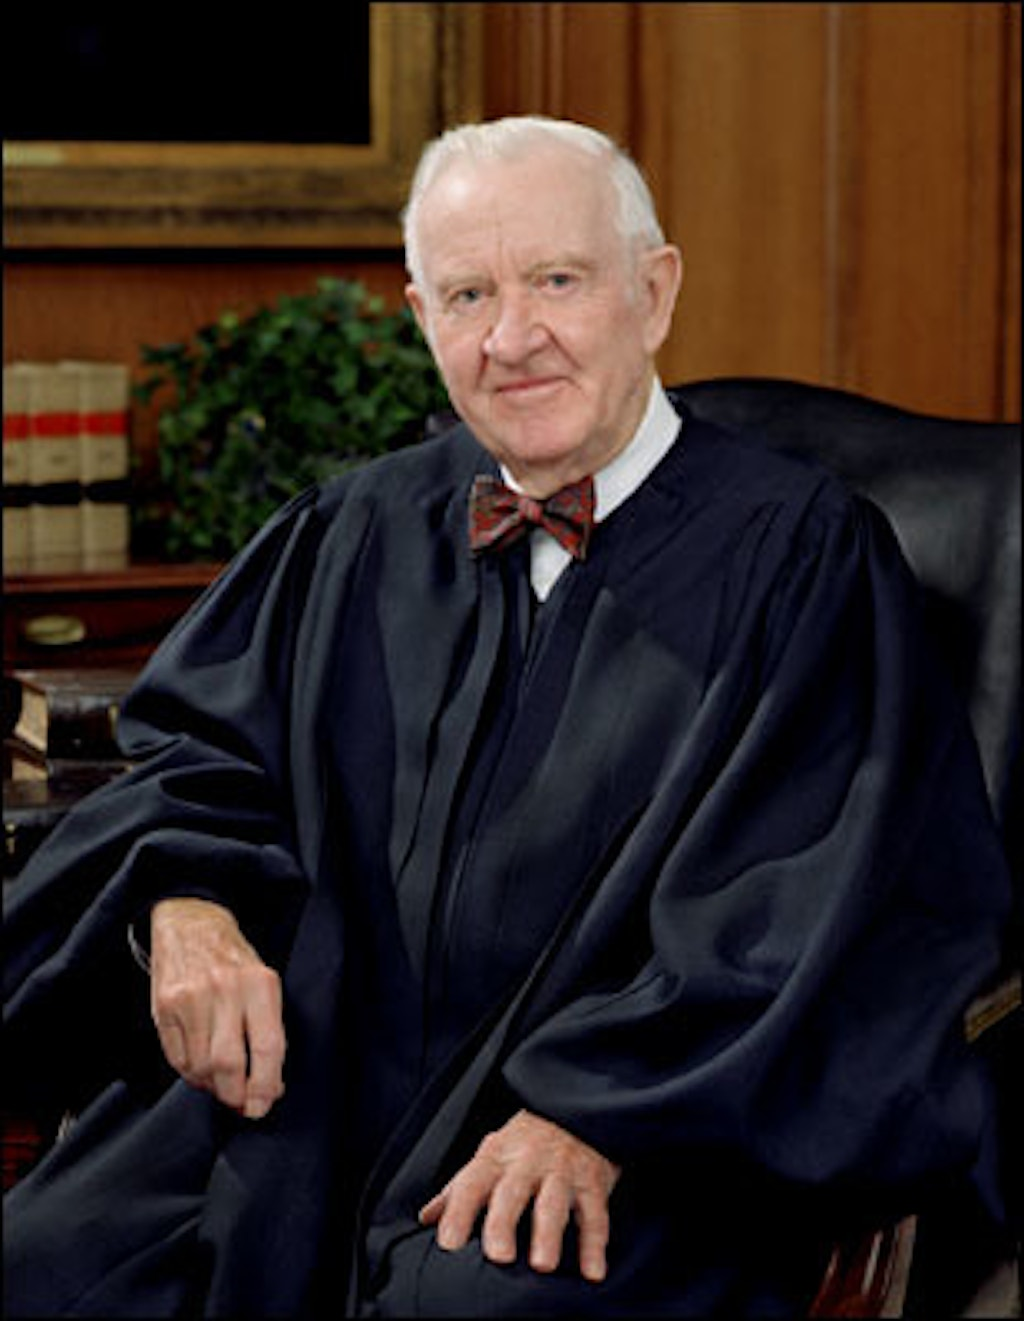 Retired Supreme Court Justice Regrets 1976 Vote Upholding the Death Penalty